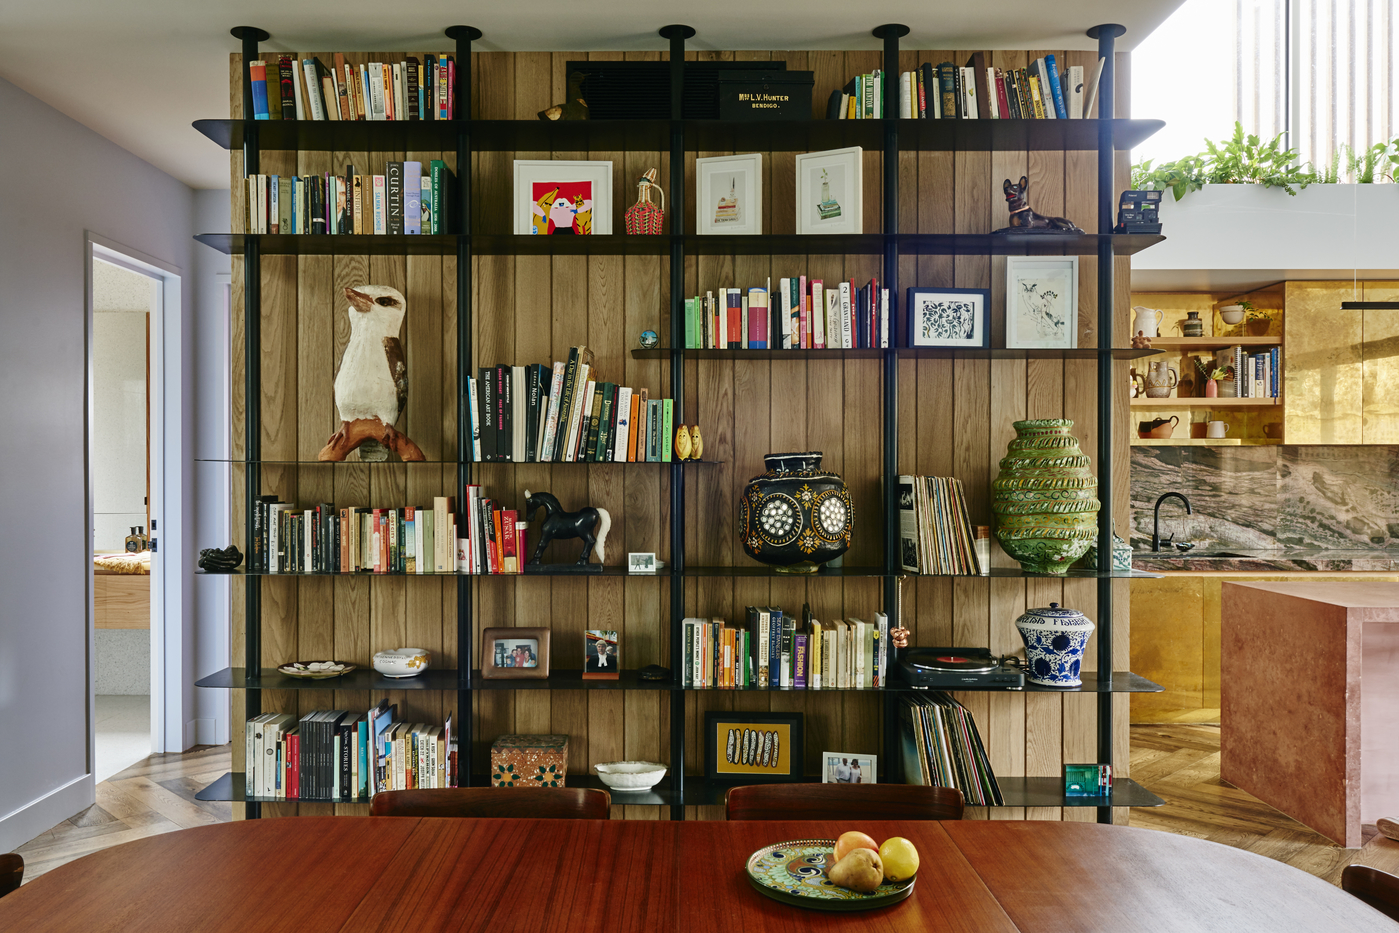 bookshelf, library, how to make time to read more books